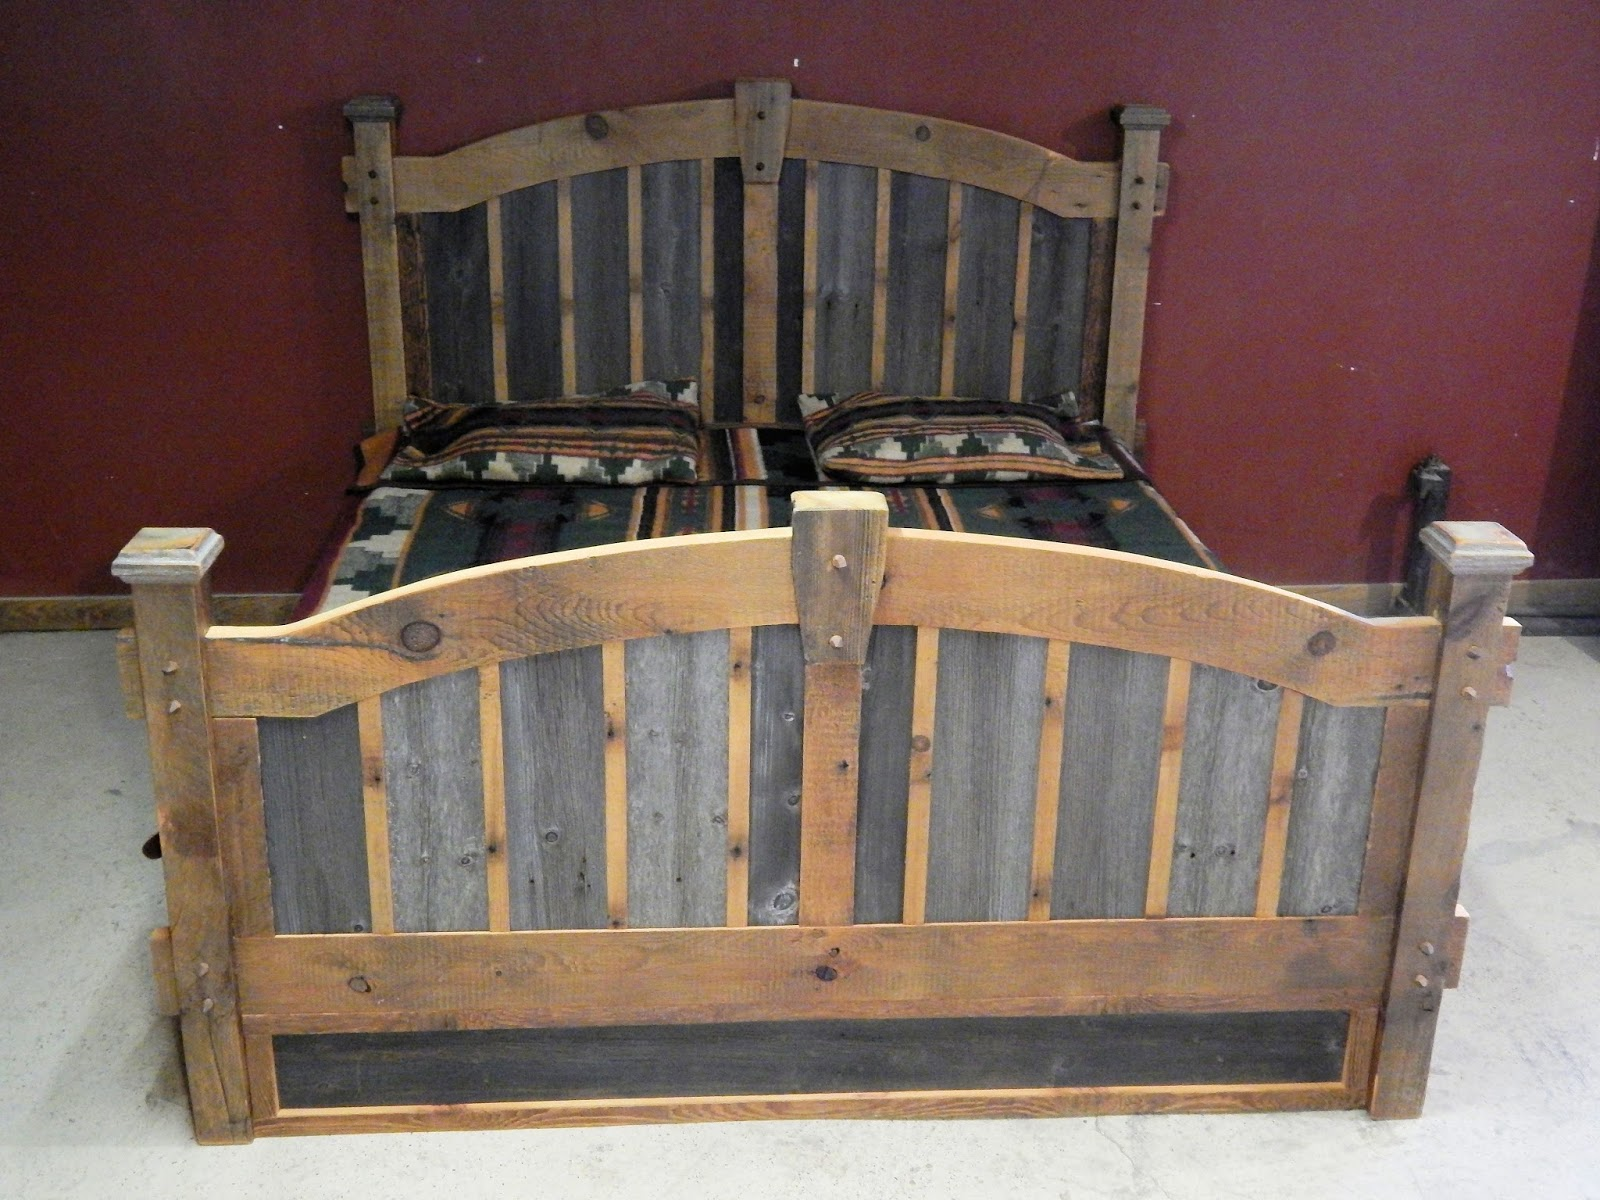 barns queen bookcase wid web hero barn hei reclaimed footboard barrel without zoom and furn wood bed atwood reviews crate